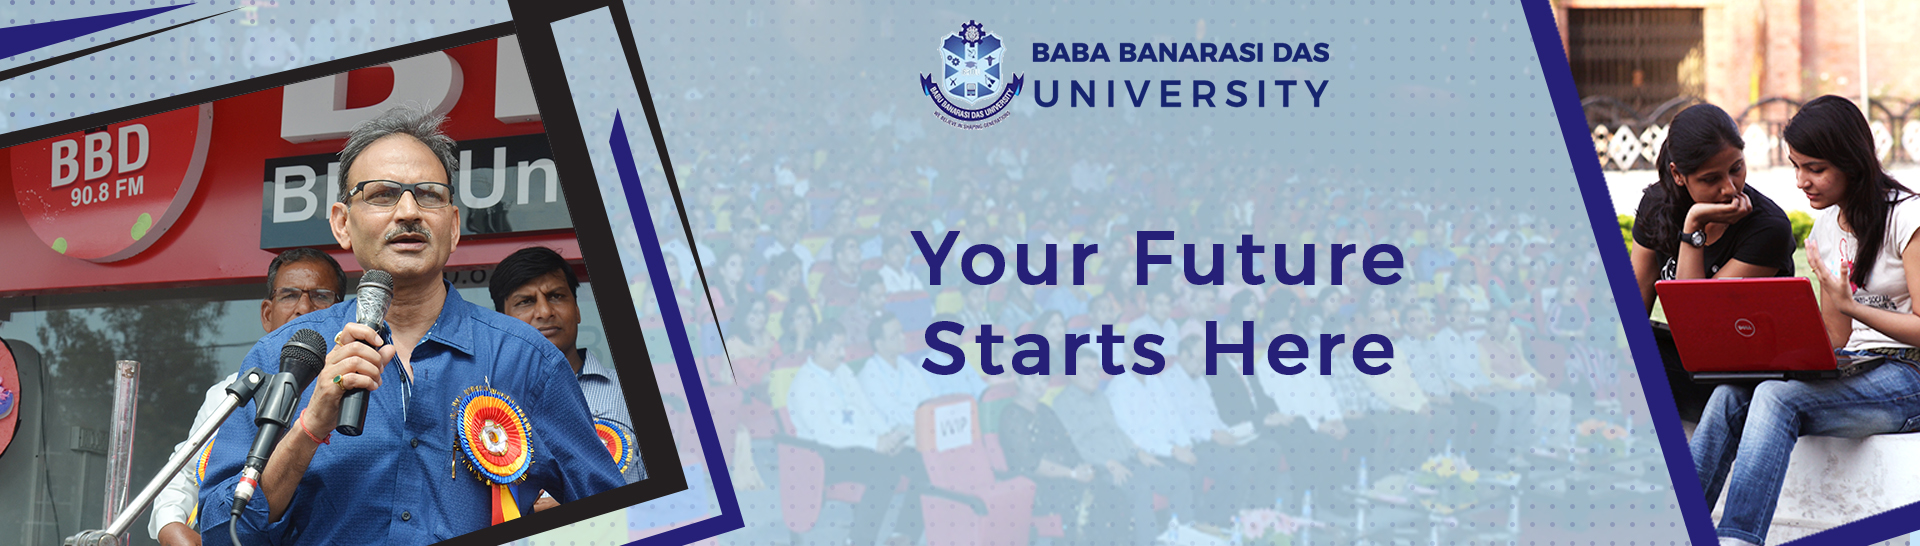 your future start here